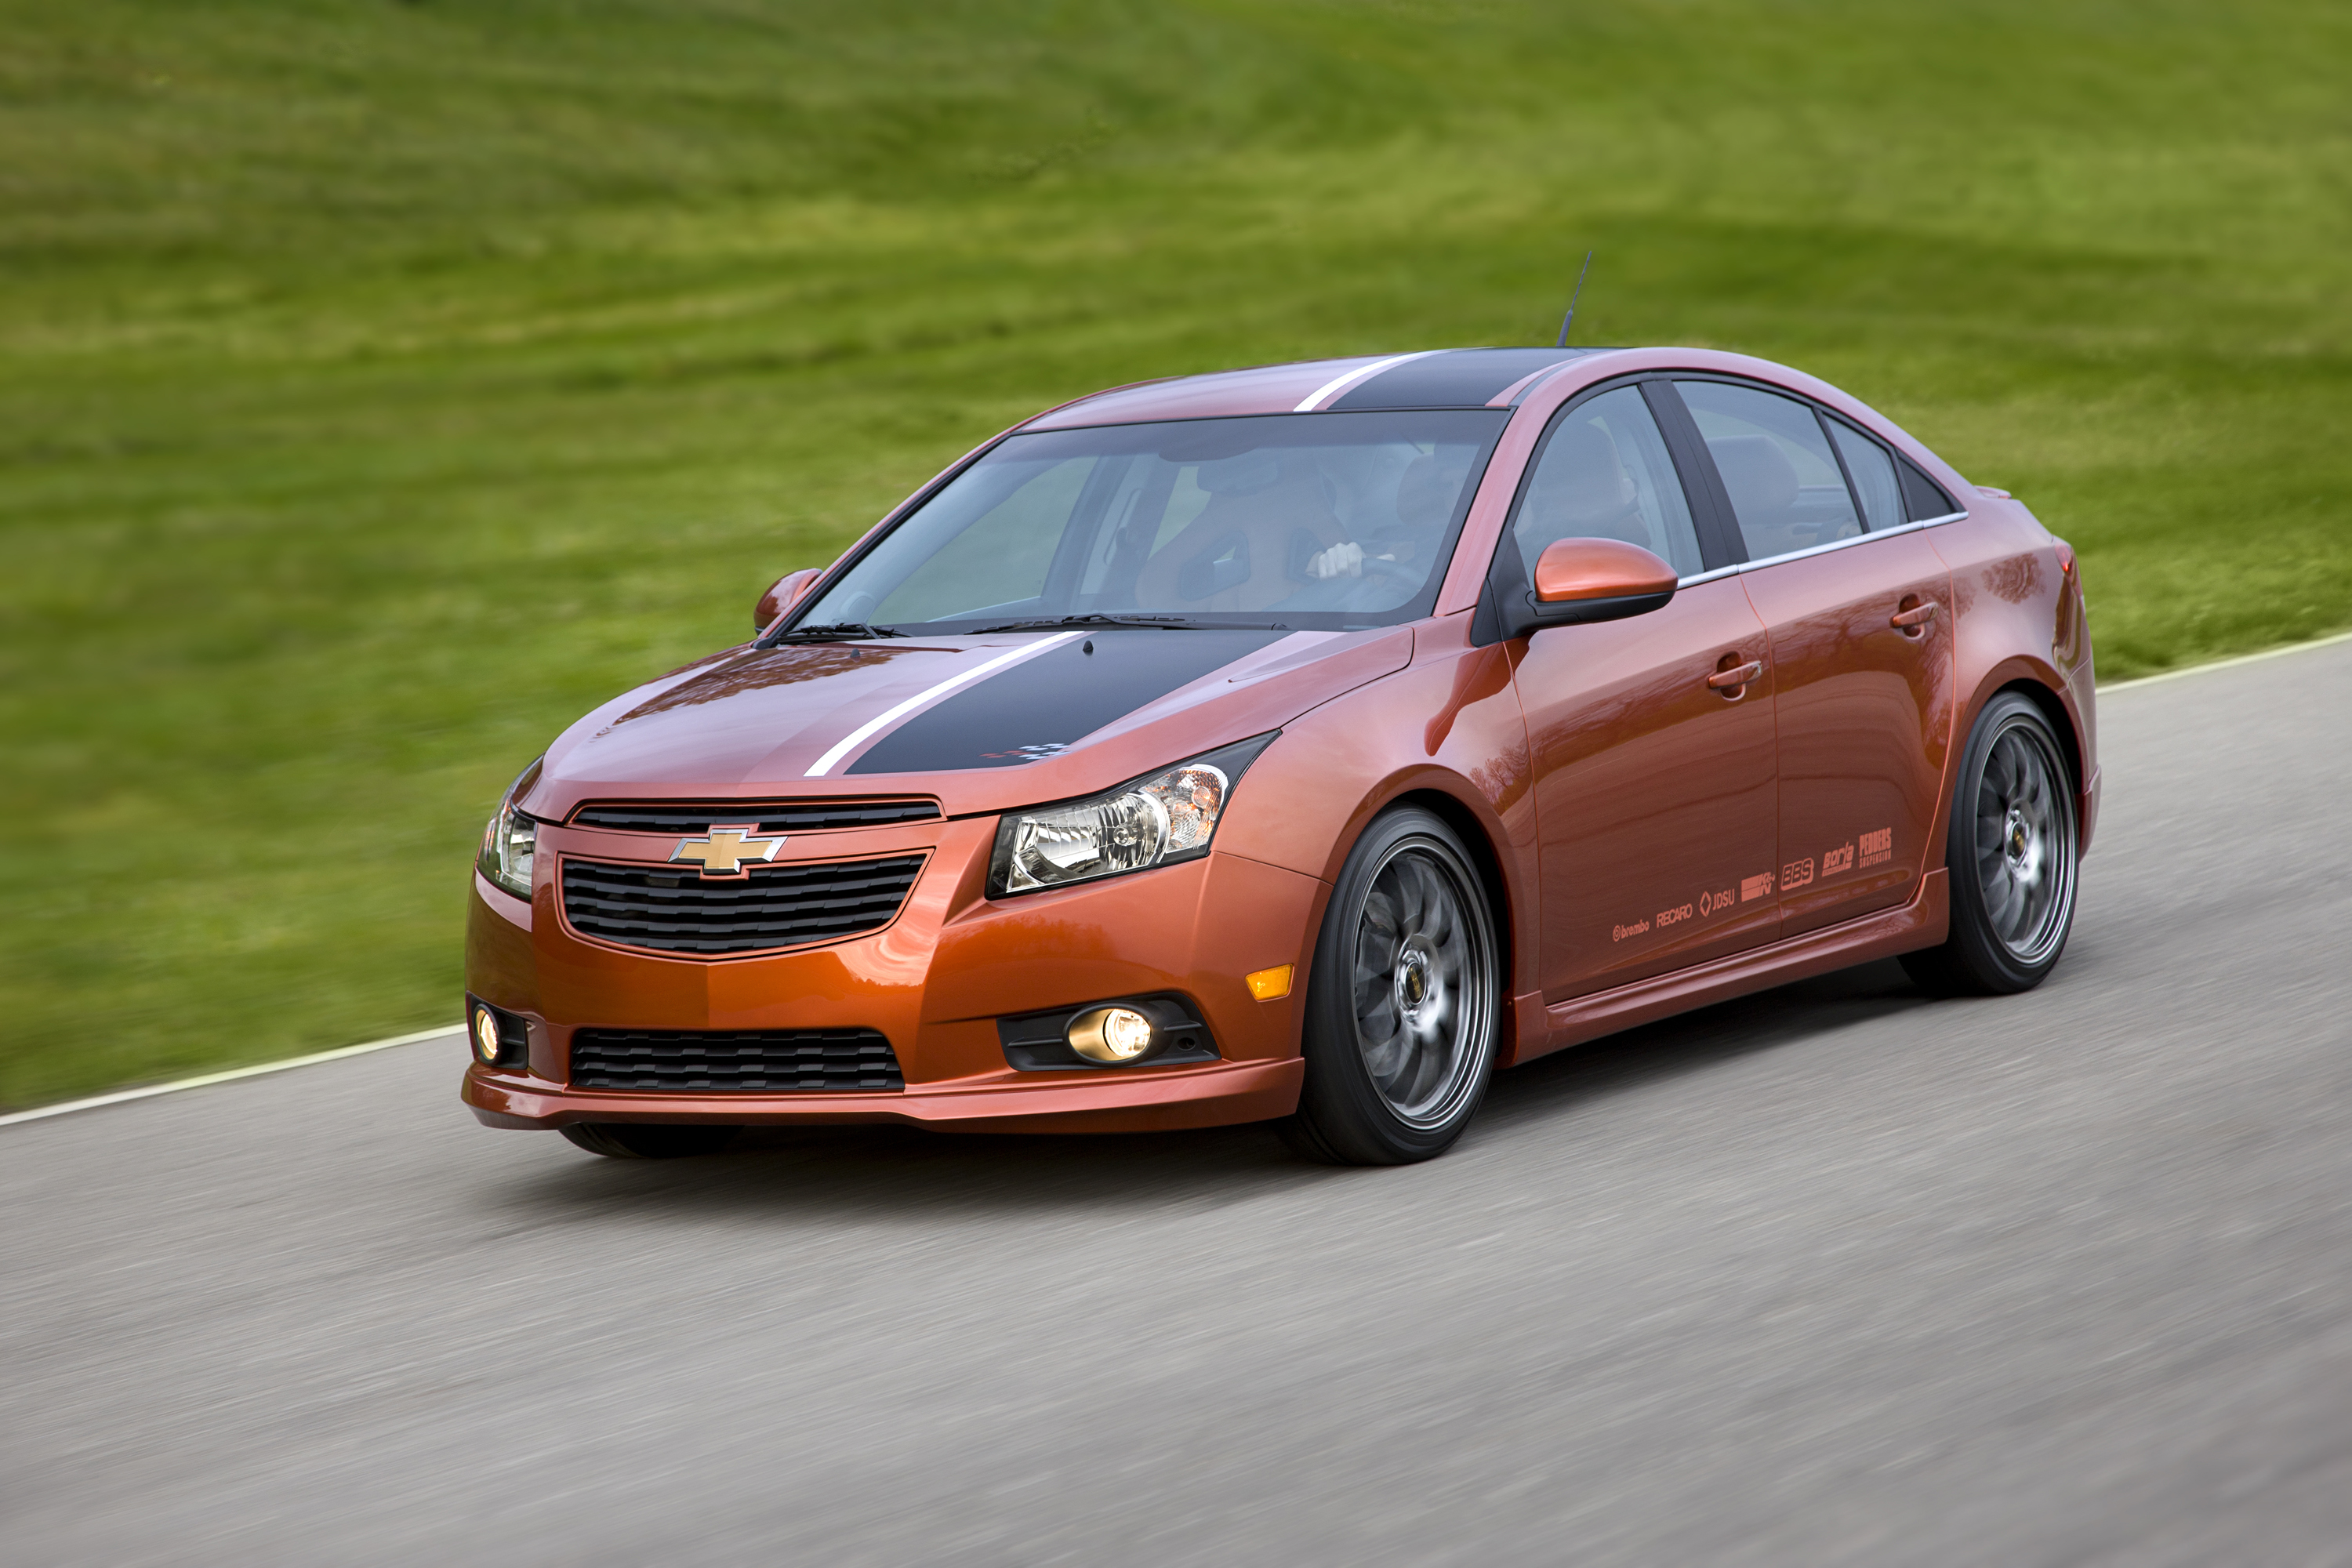 2010 Chevy Cruze Z-Spec Concept Review - Top Speed